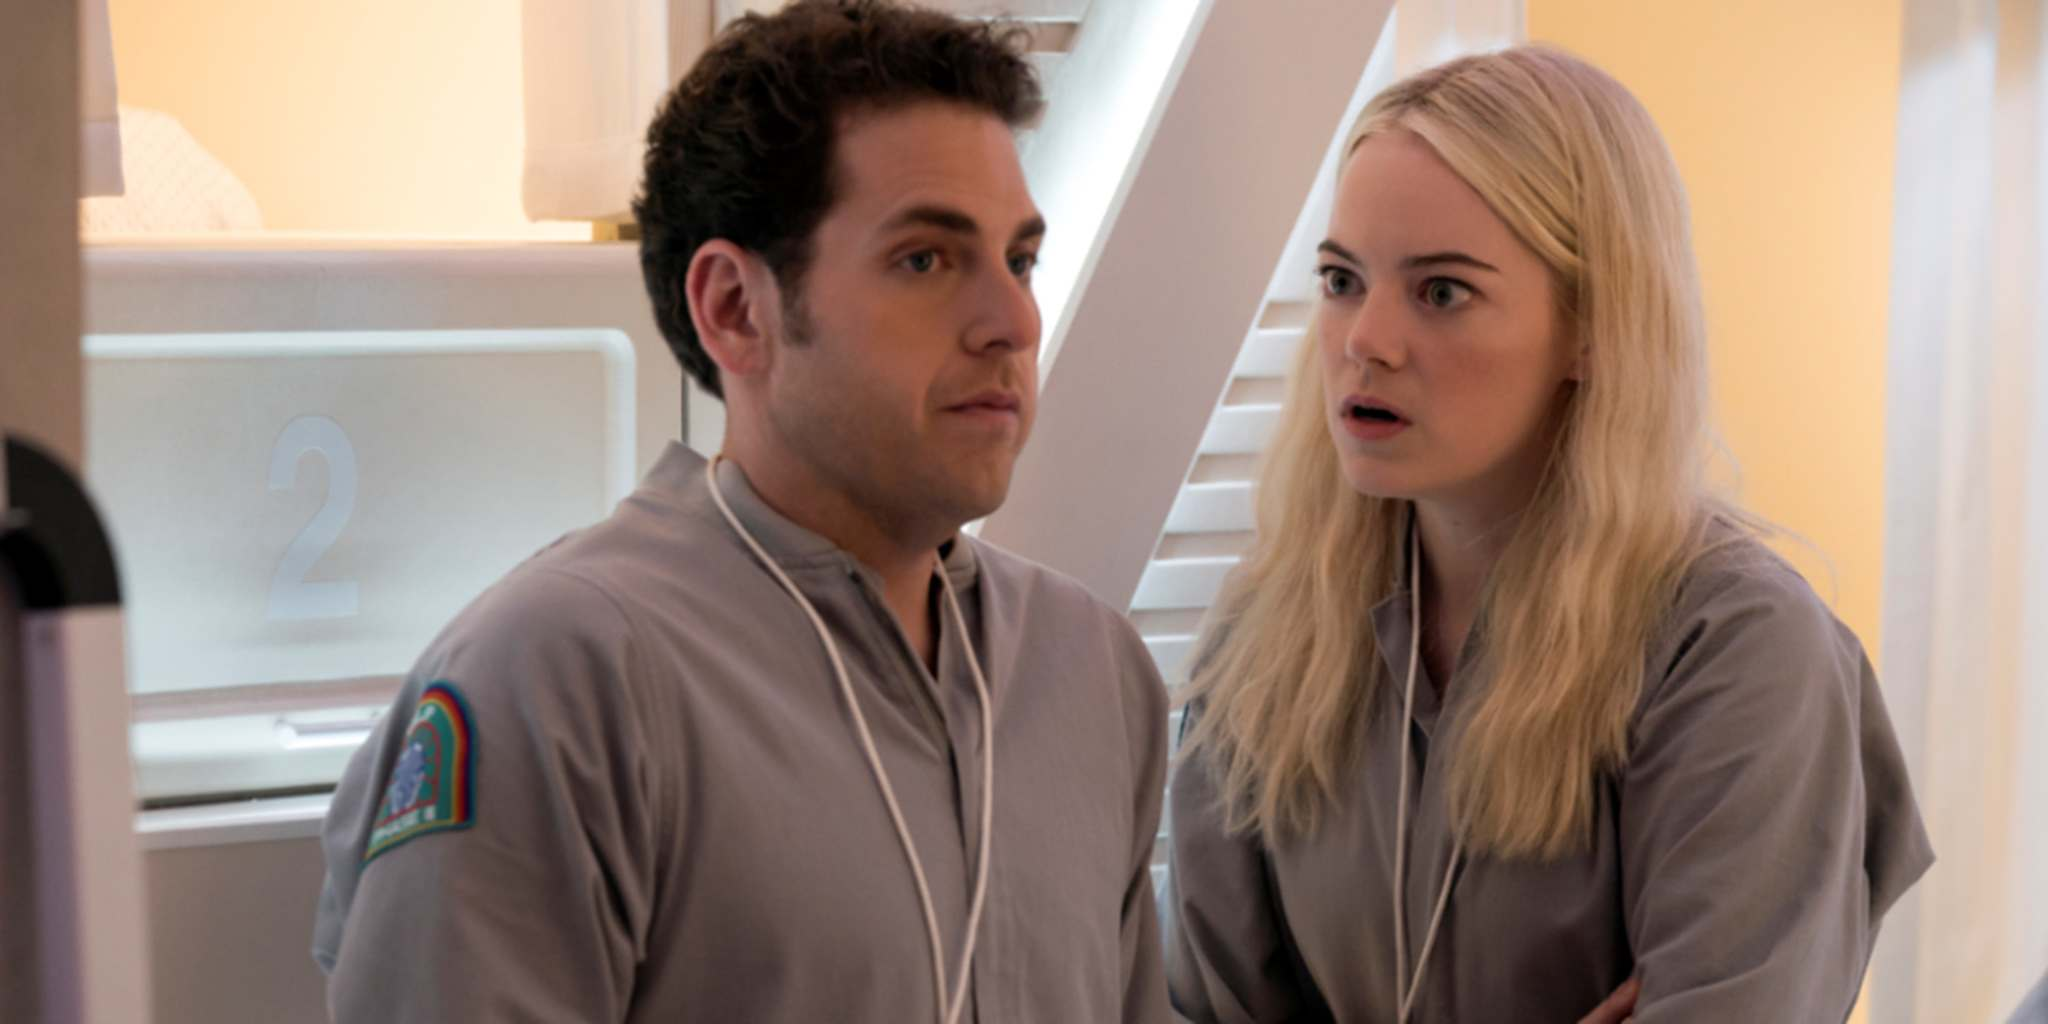 Netflix/Michele K. Short</p><p>Jonah Hill and Emma Stone star in the Netflix series &#34;Maniac.&#34;</p>